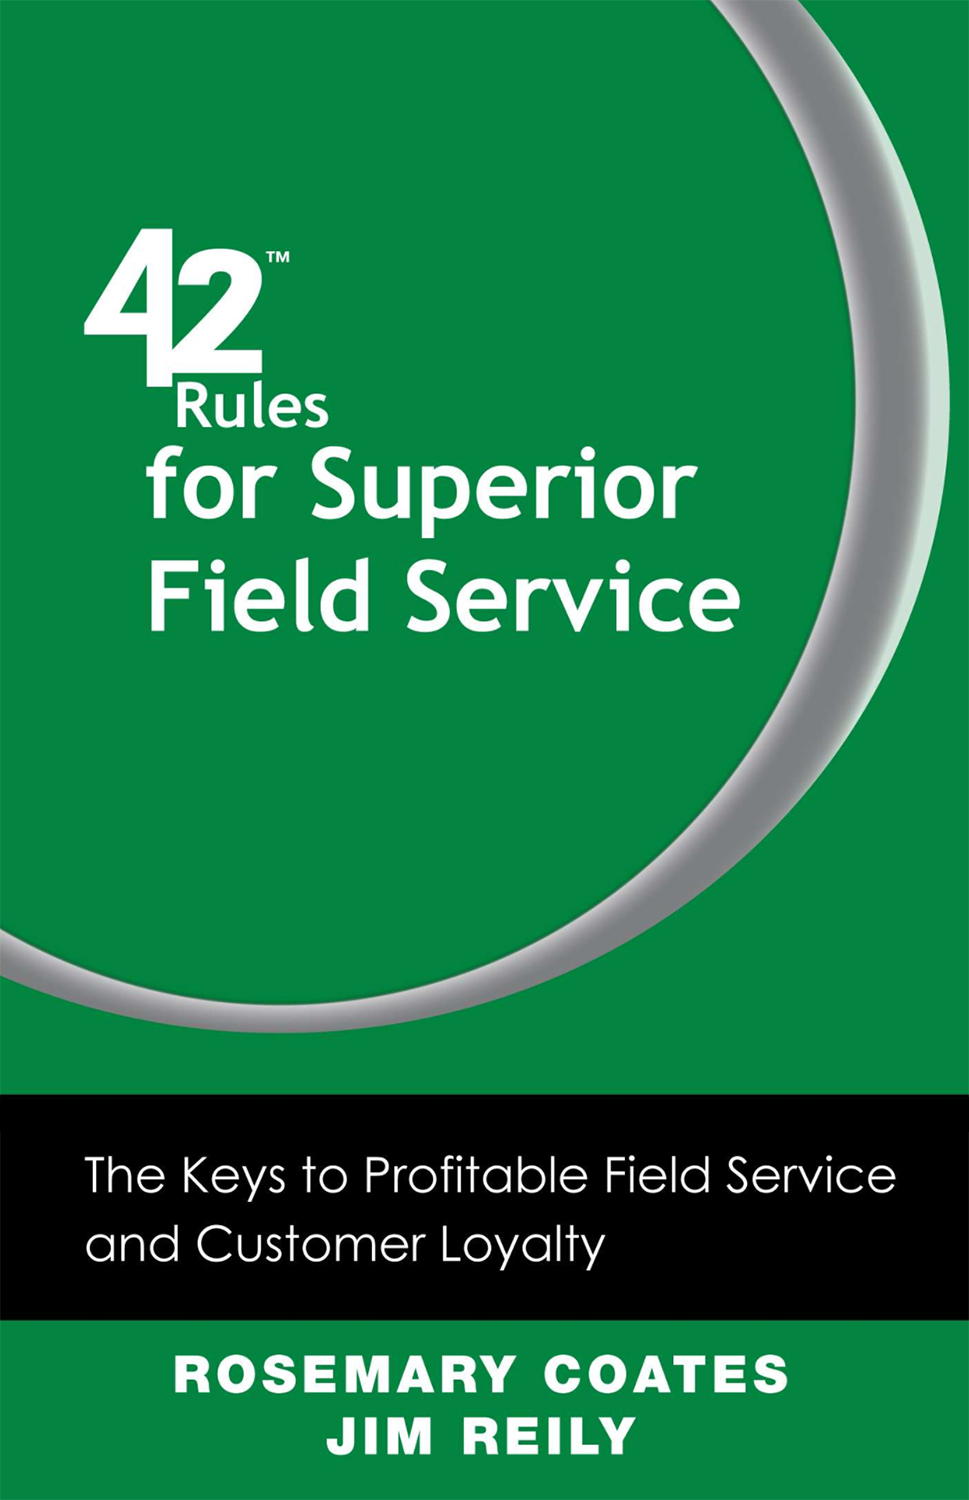 42-rules-superior-field-service